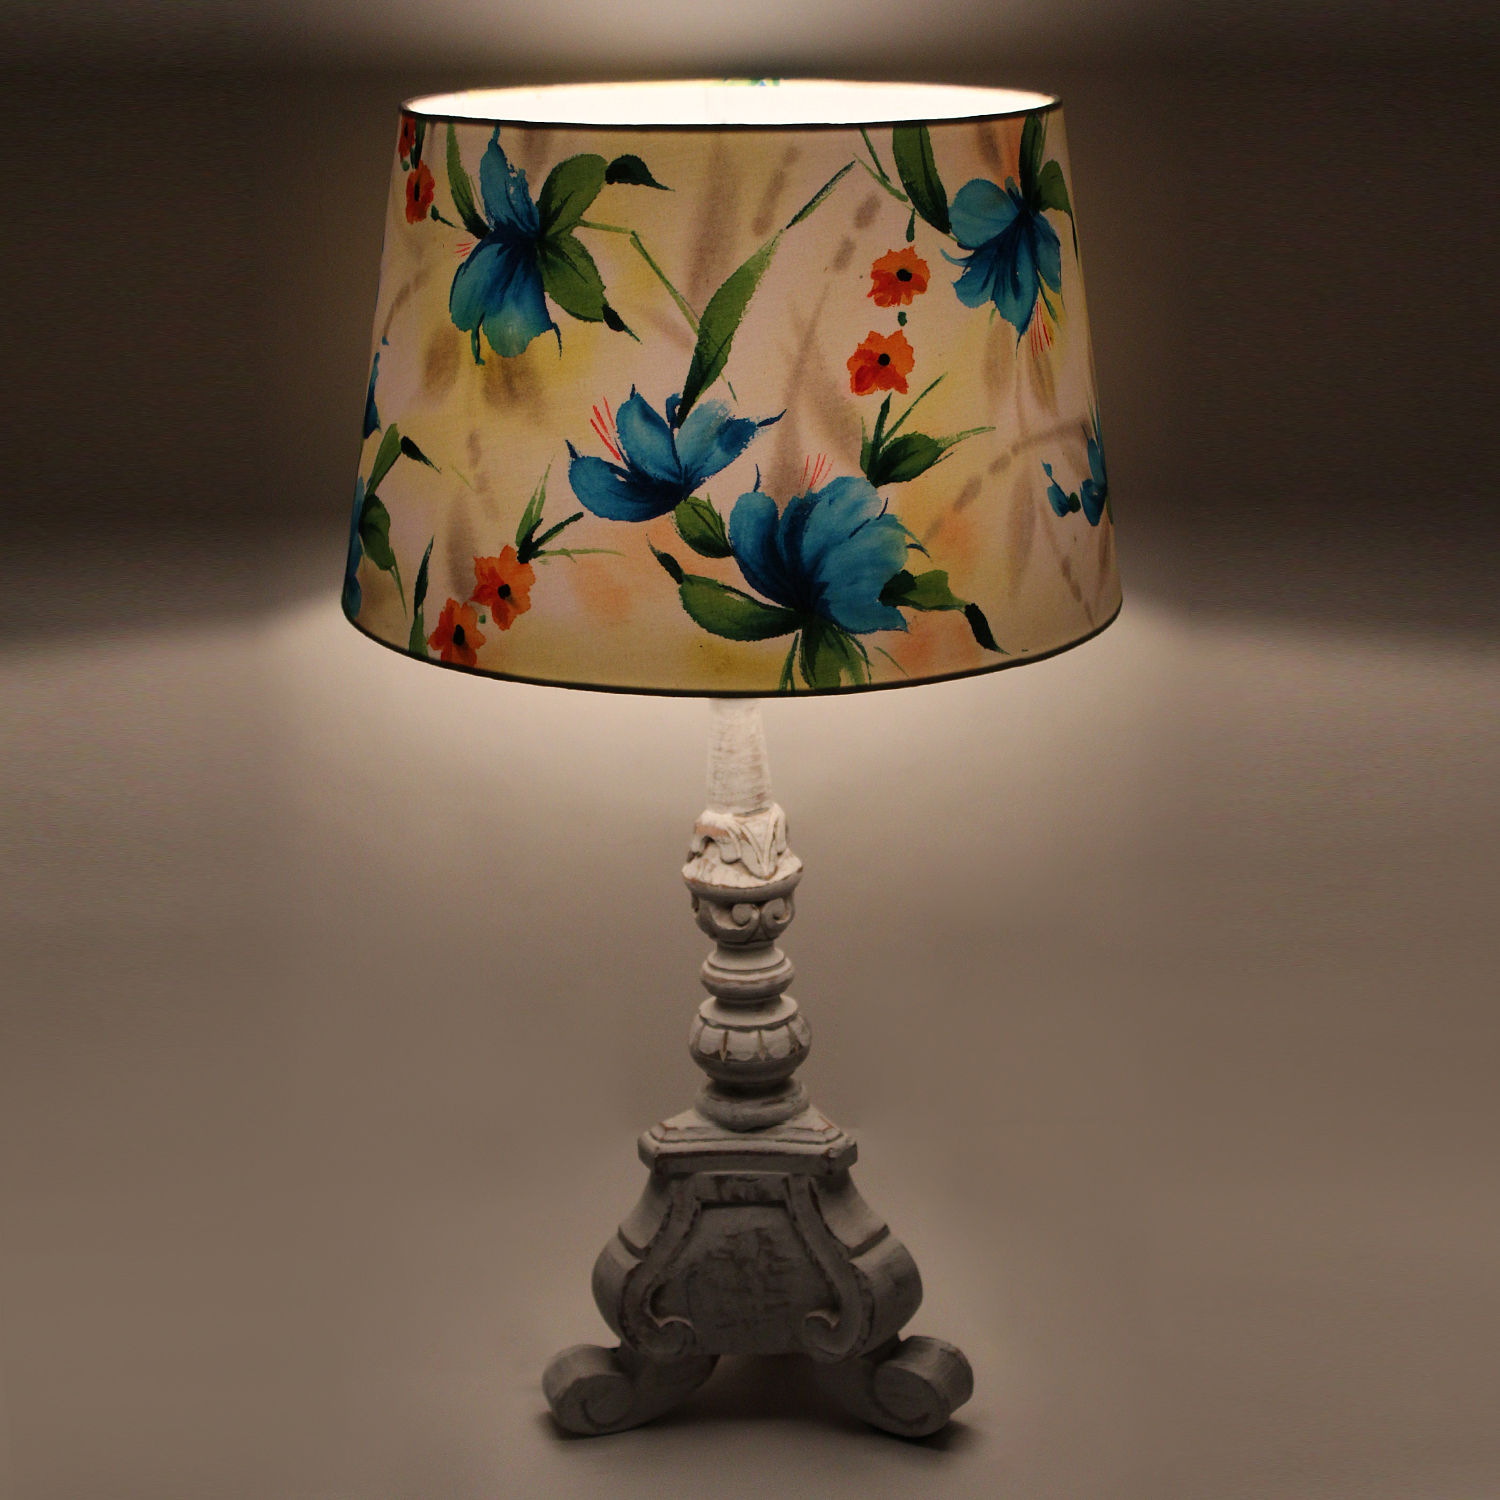 The decor mart butterfly garden hand painted lamp shade pack of 1 aloadofball Gallery